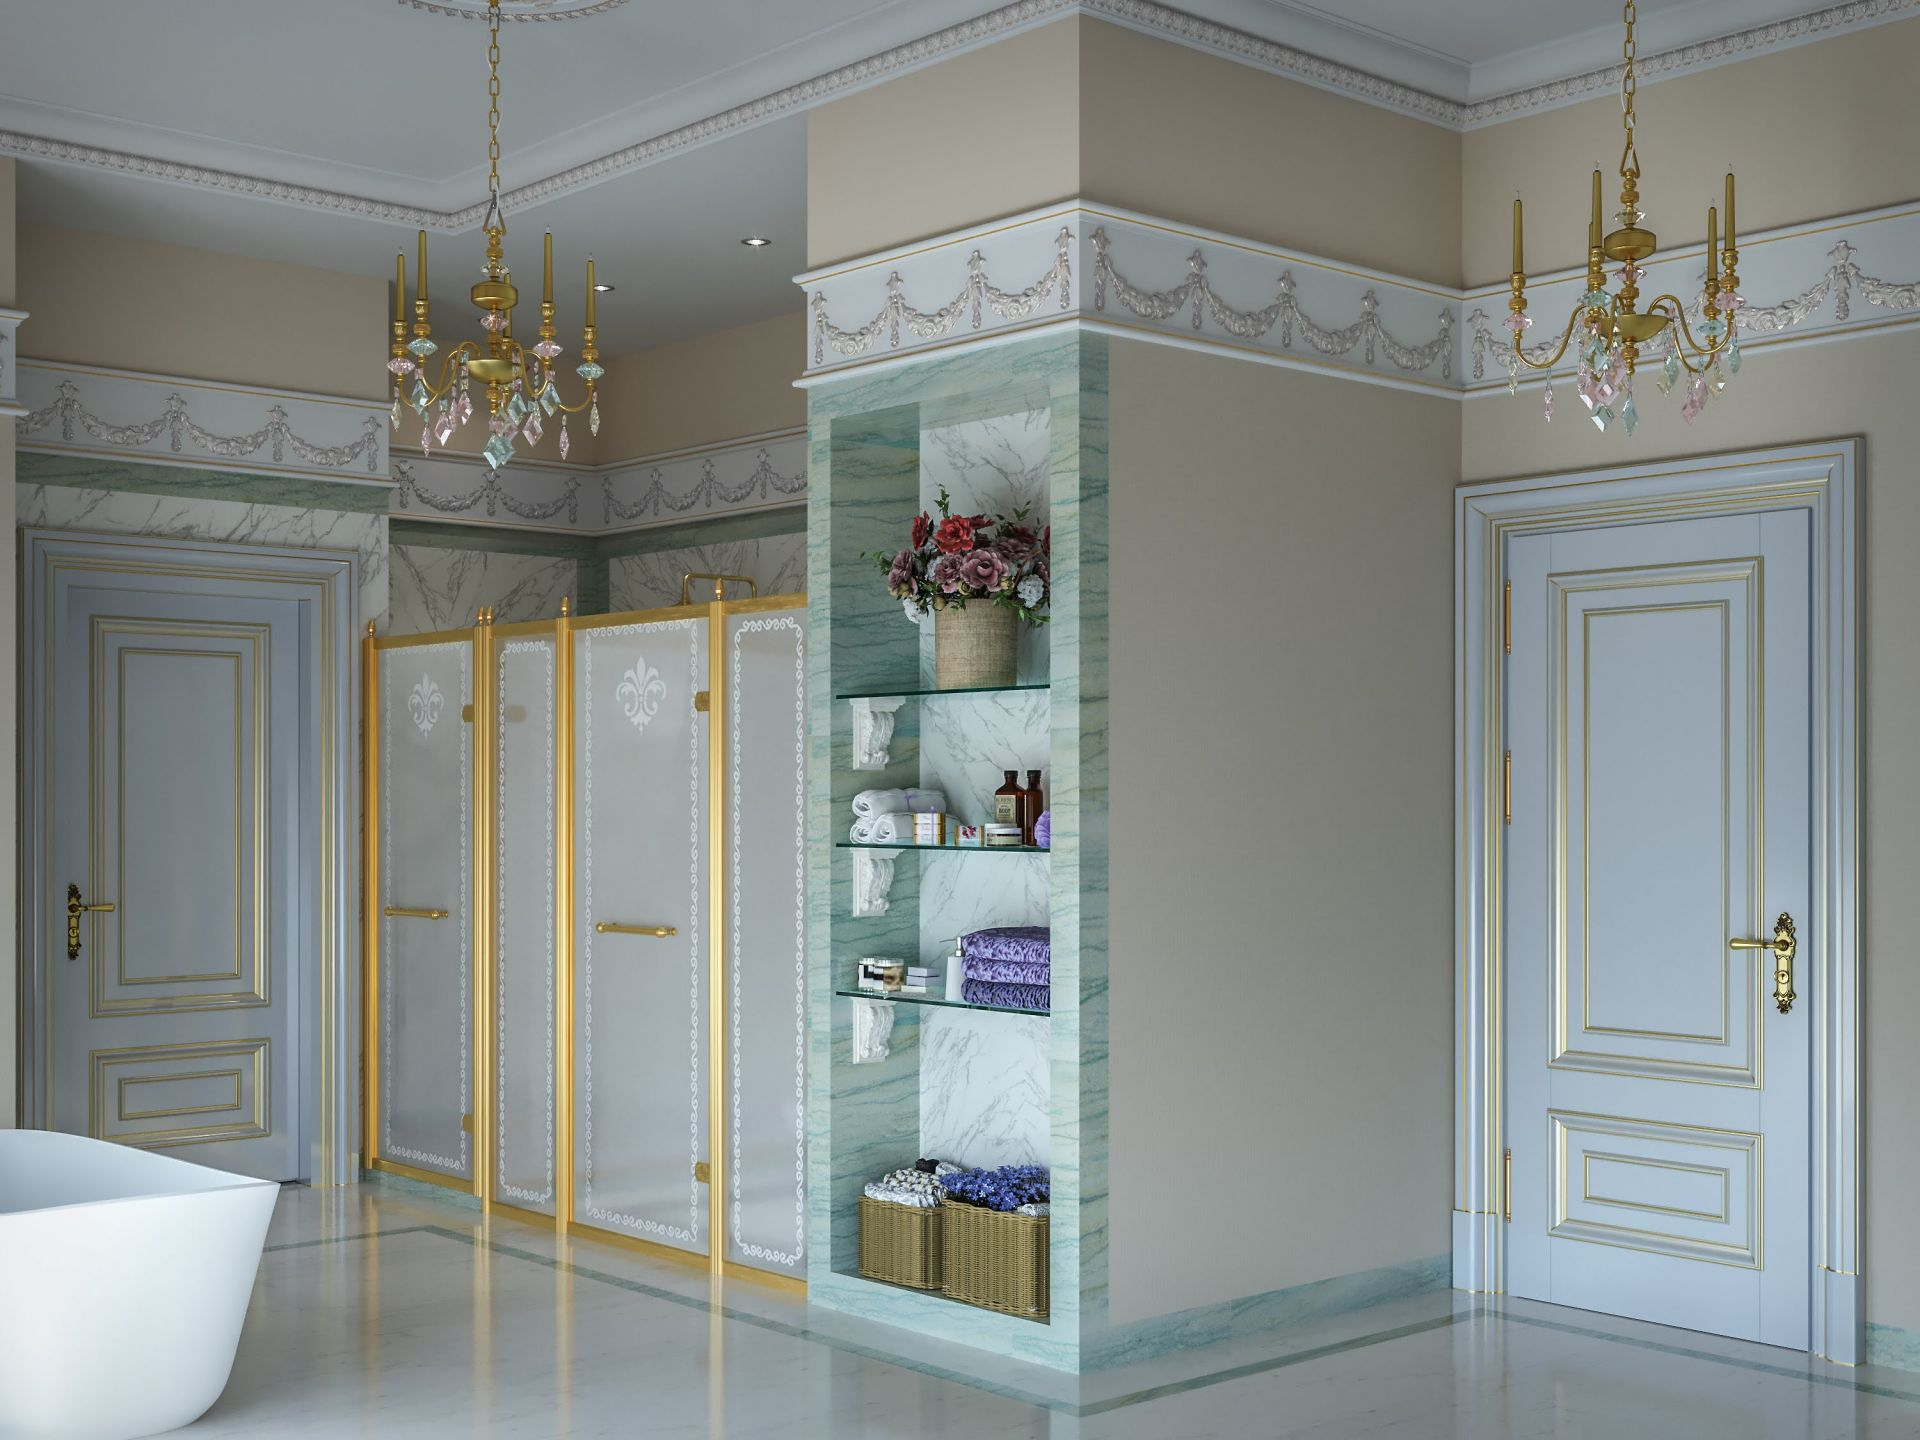 Luxurious bathroom design in neoclassical style